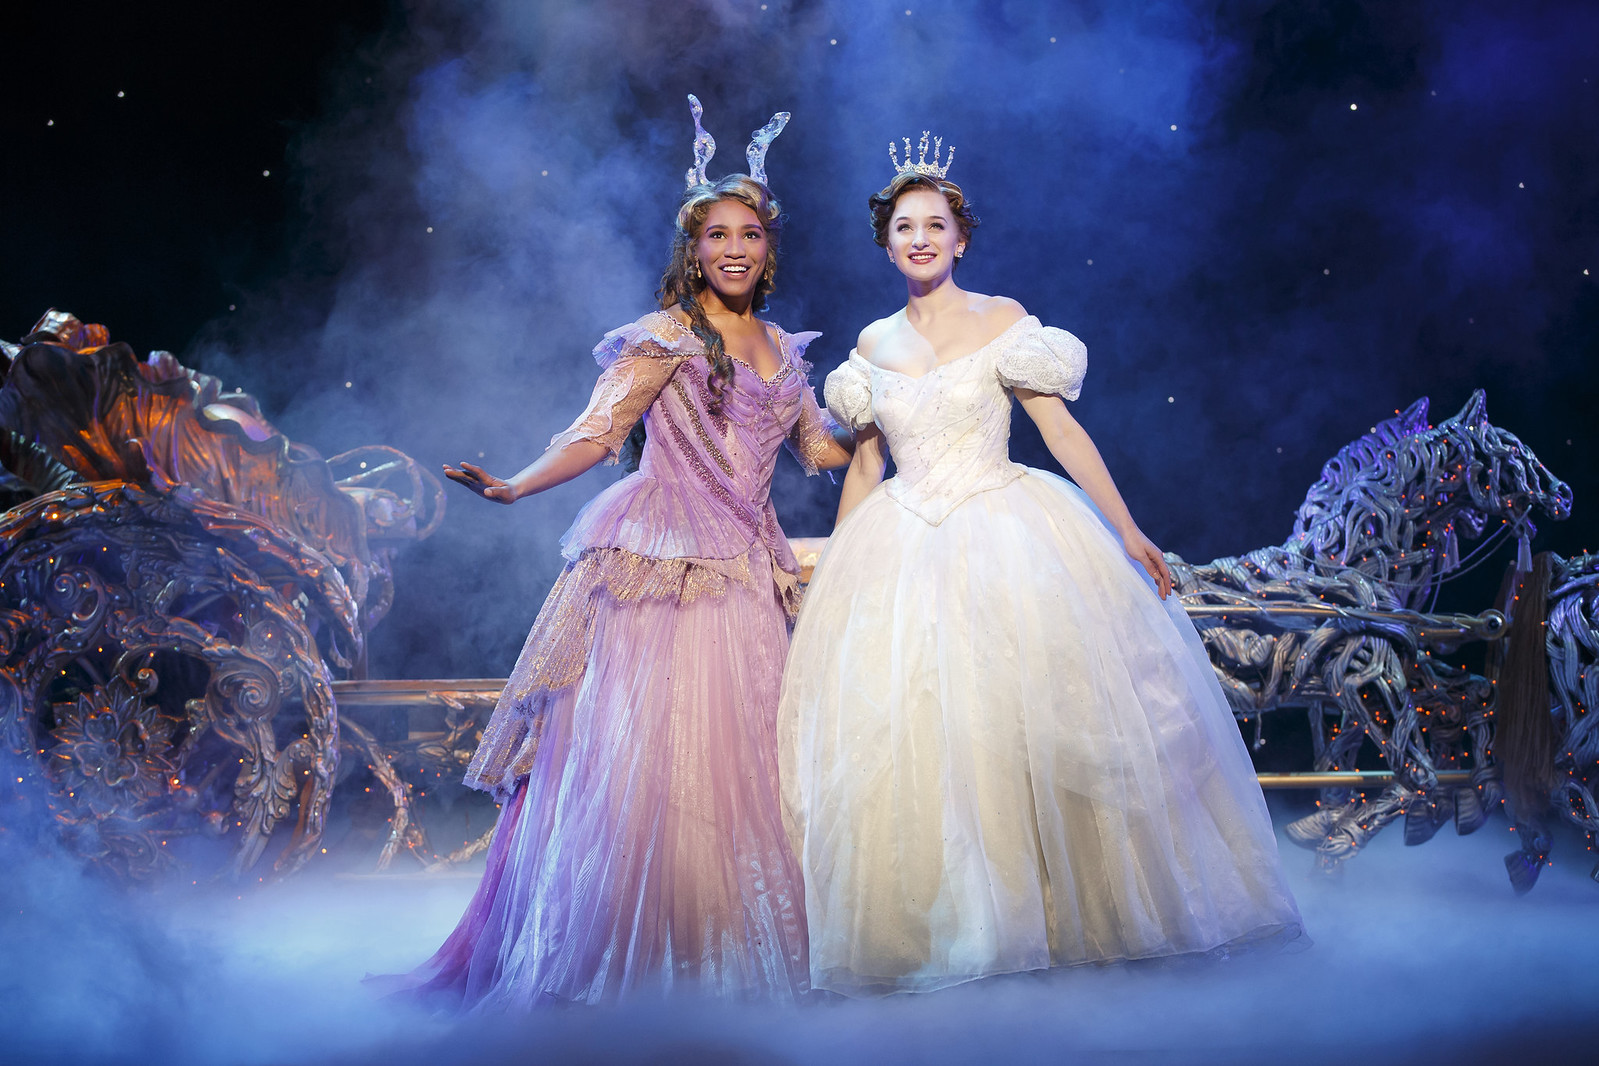 Leslie Jackson and Tatyana Lubov in Rodgers + Hammerstein's Cinderella // Broadway In Detroit: Rodgers + Hammerstein's Cinderella At The Fisher Theatre | via Wading in Big Shoes